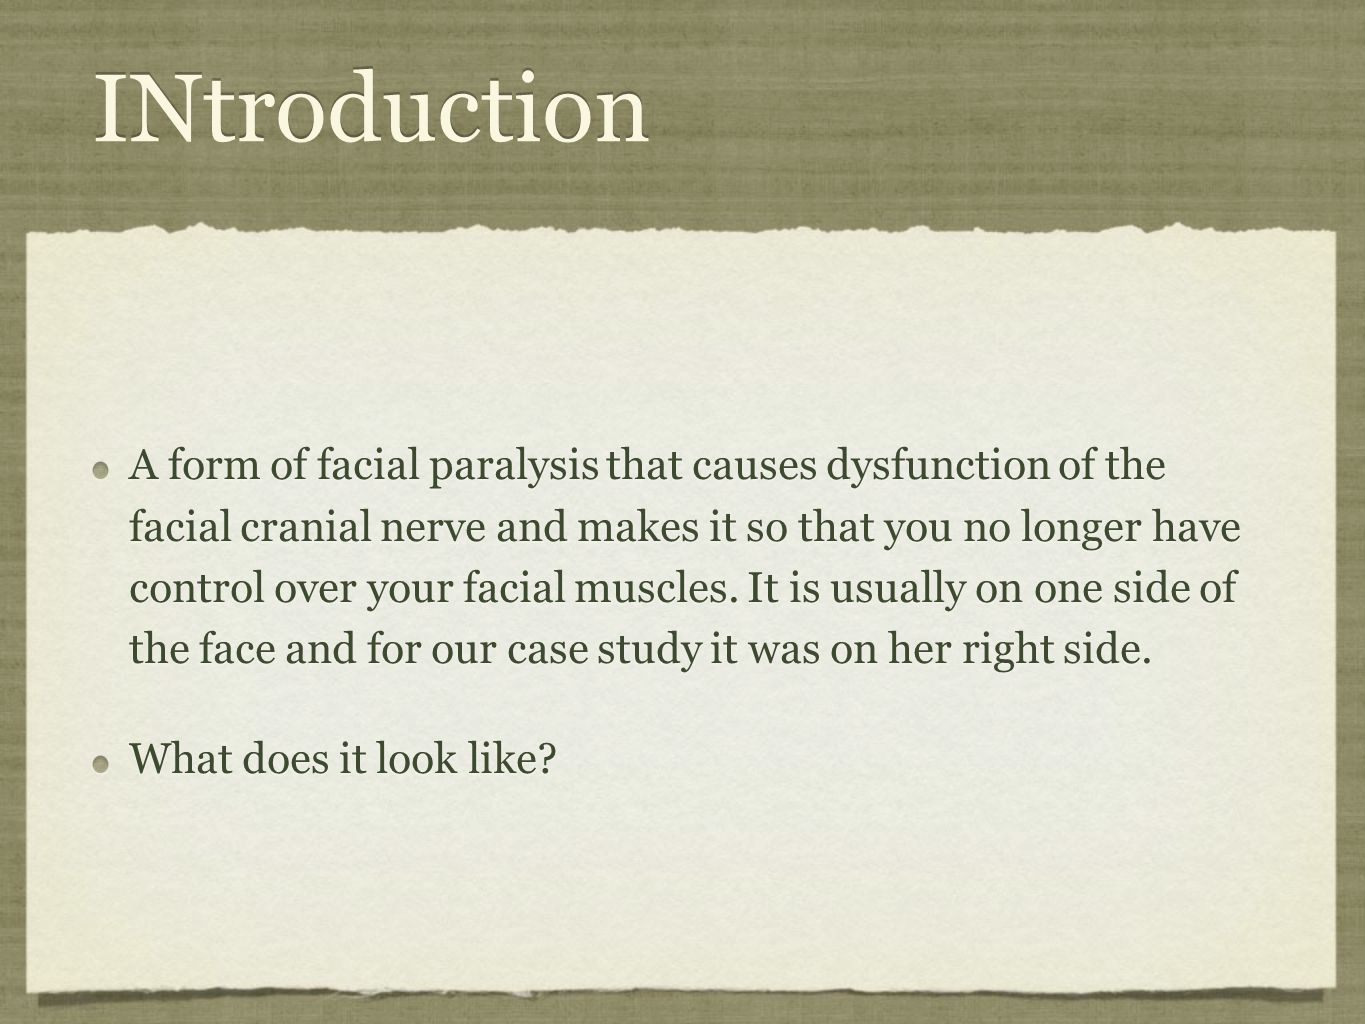 INtroduction A form of facial paralysis that causes dysfunction of the facial cranial nerve and makes it so that you no longer have control over your